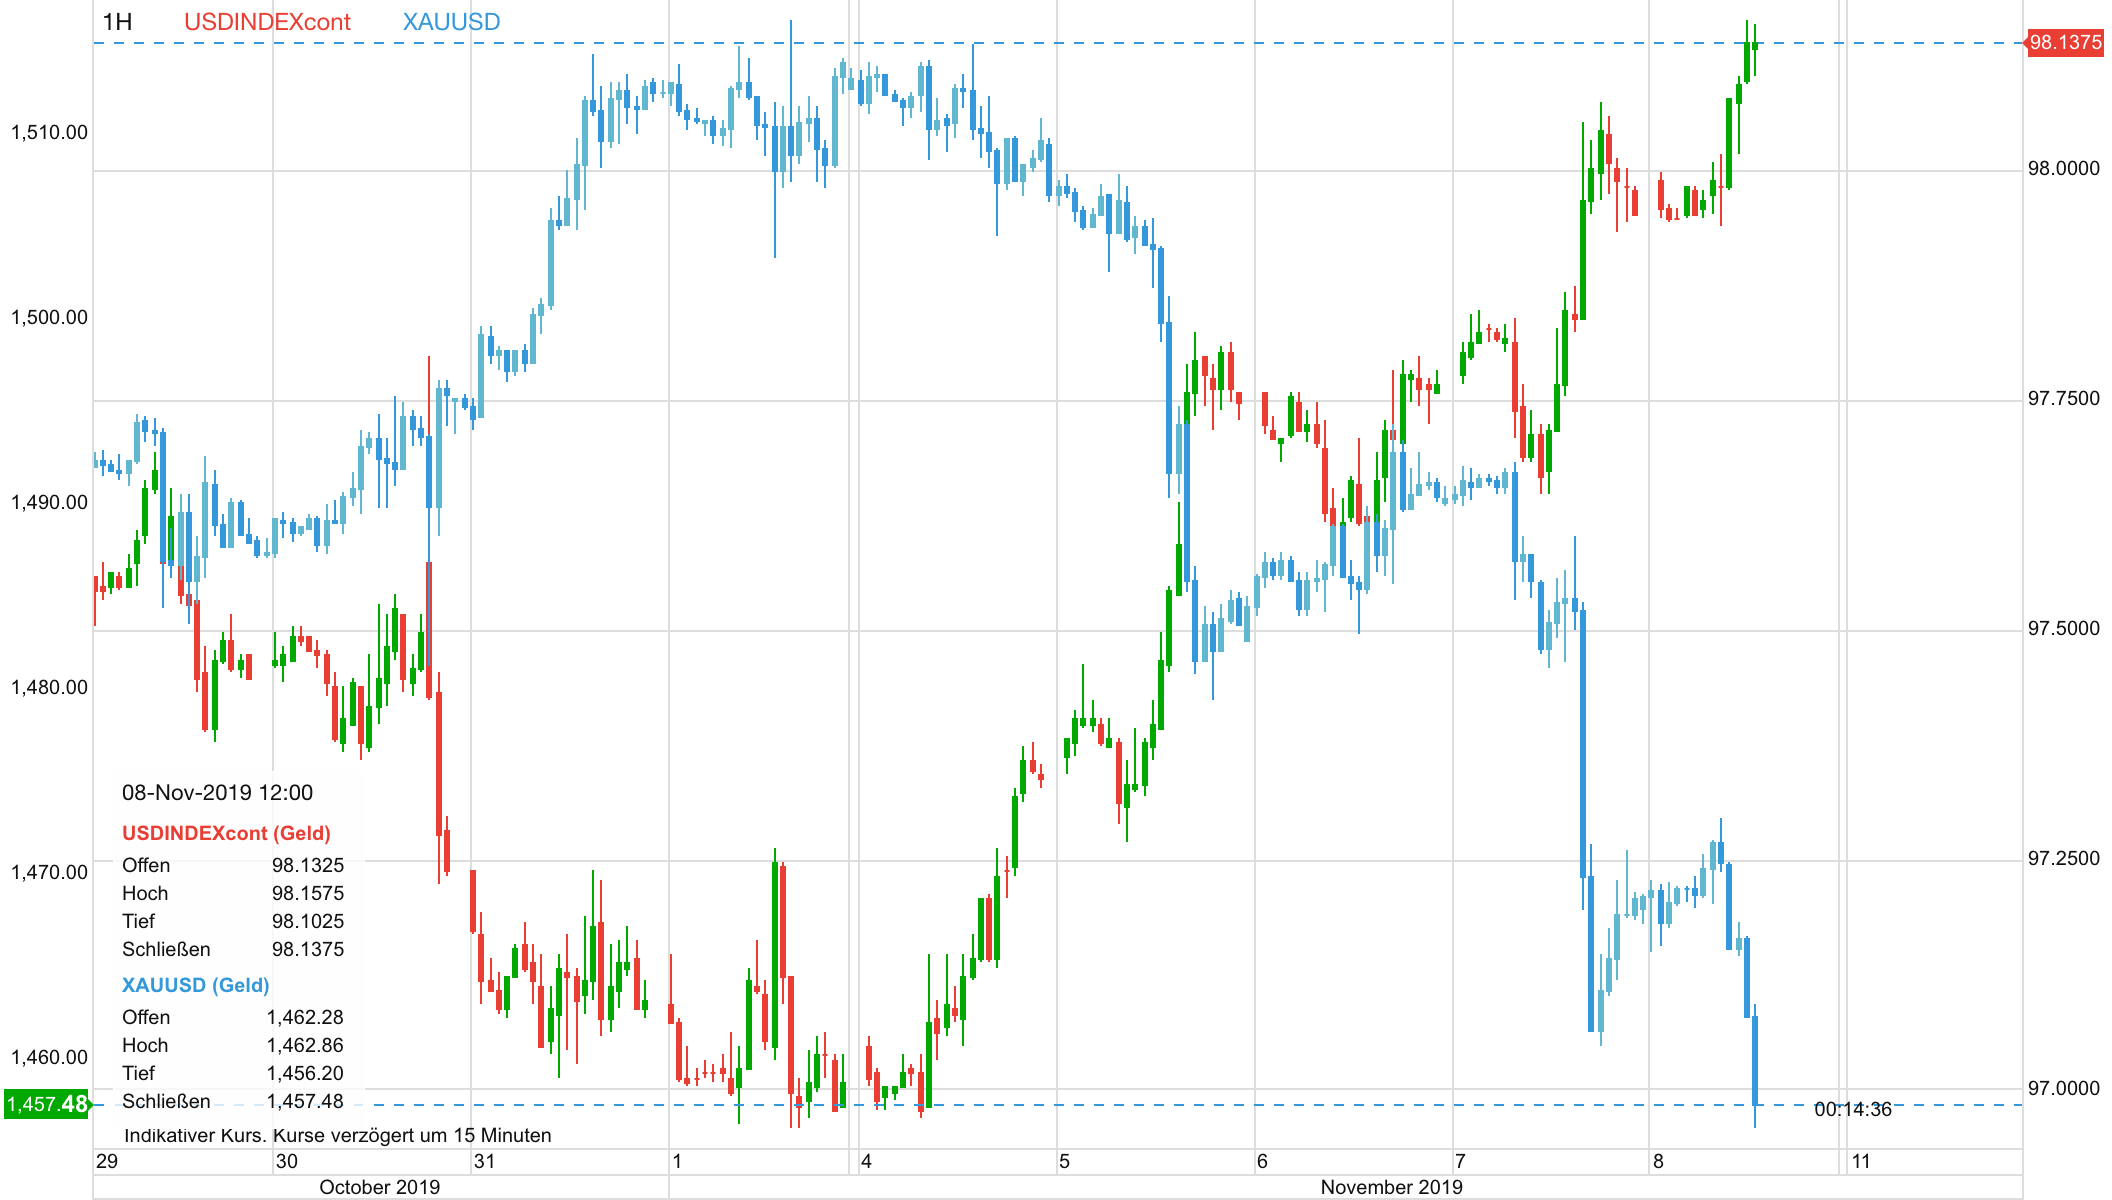 Goldpreis vs US-Dollar Chart